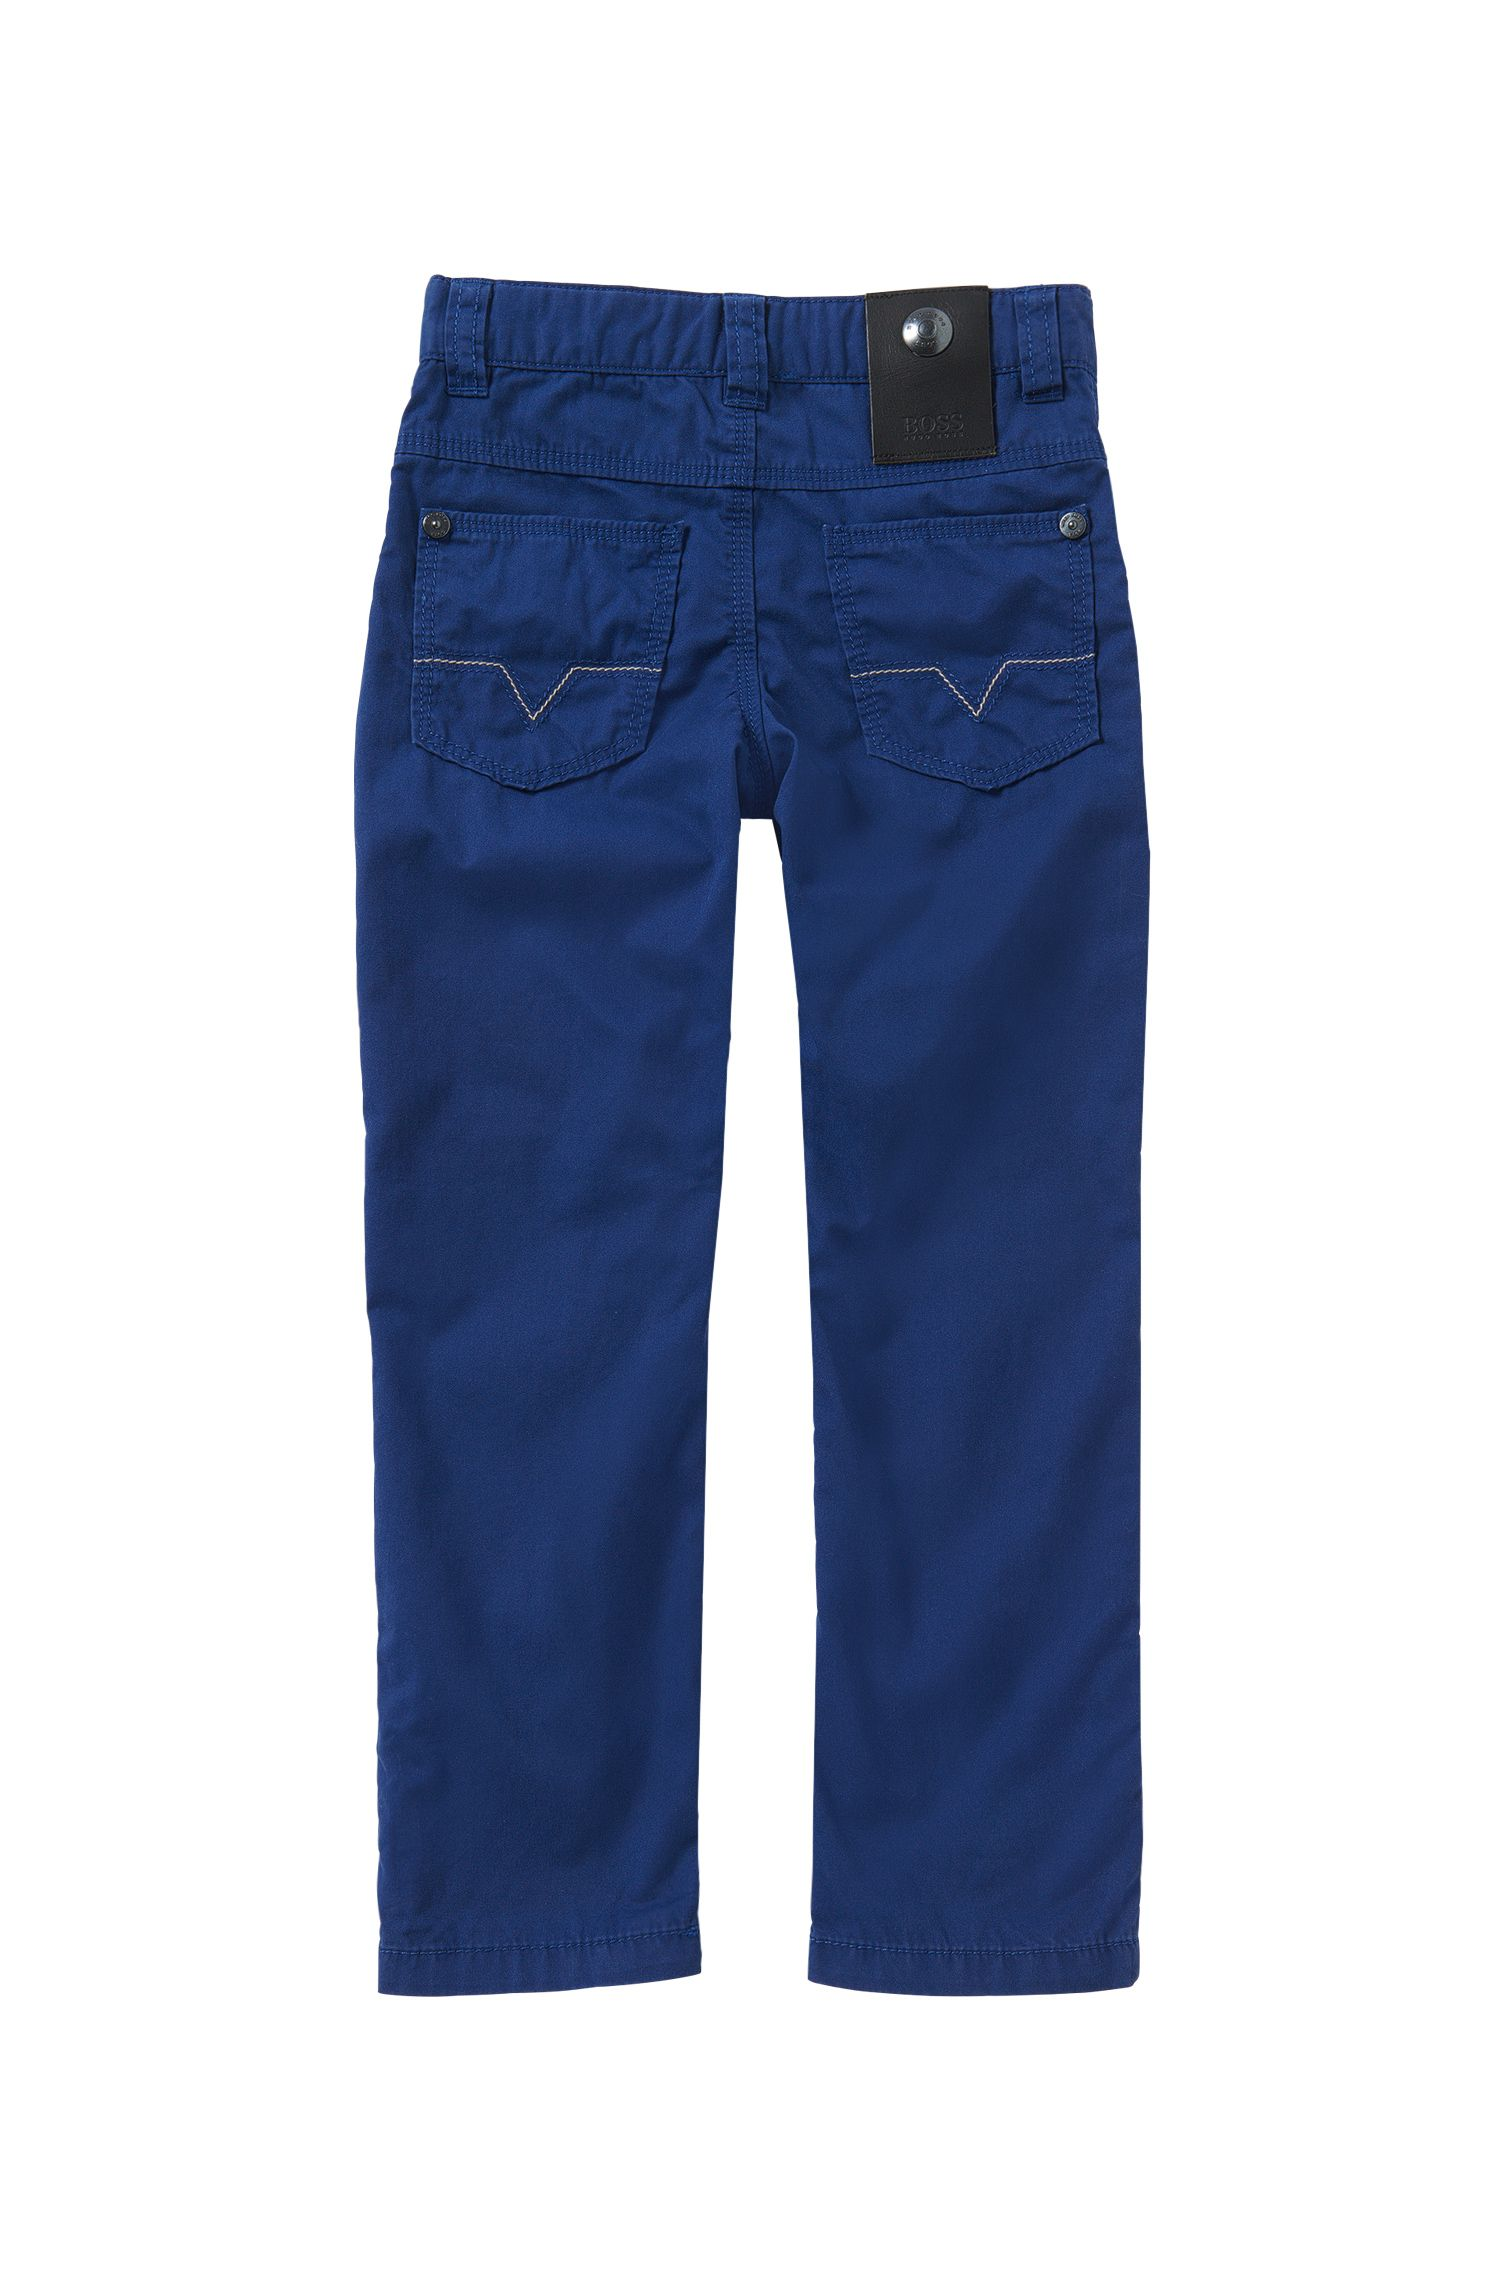 Unifarbene Slim-Fit Kids-Hose aus Baumwolle: 'J24393'